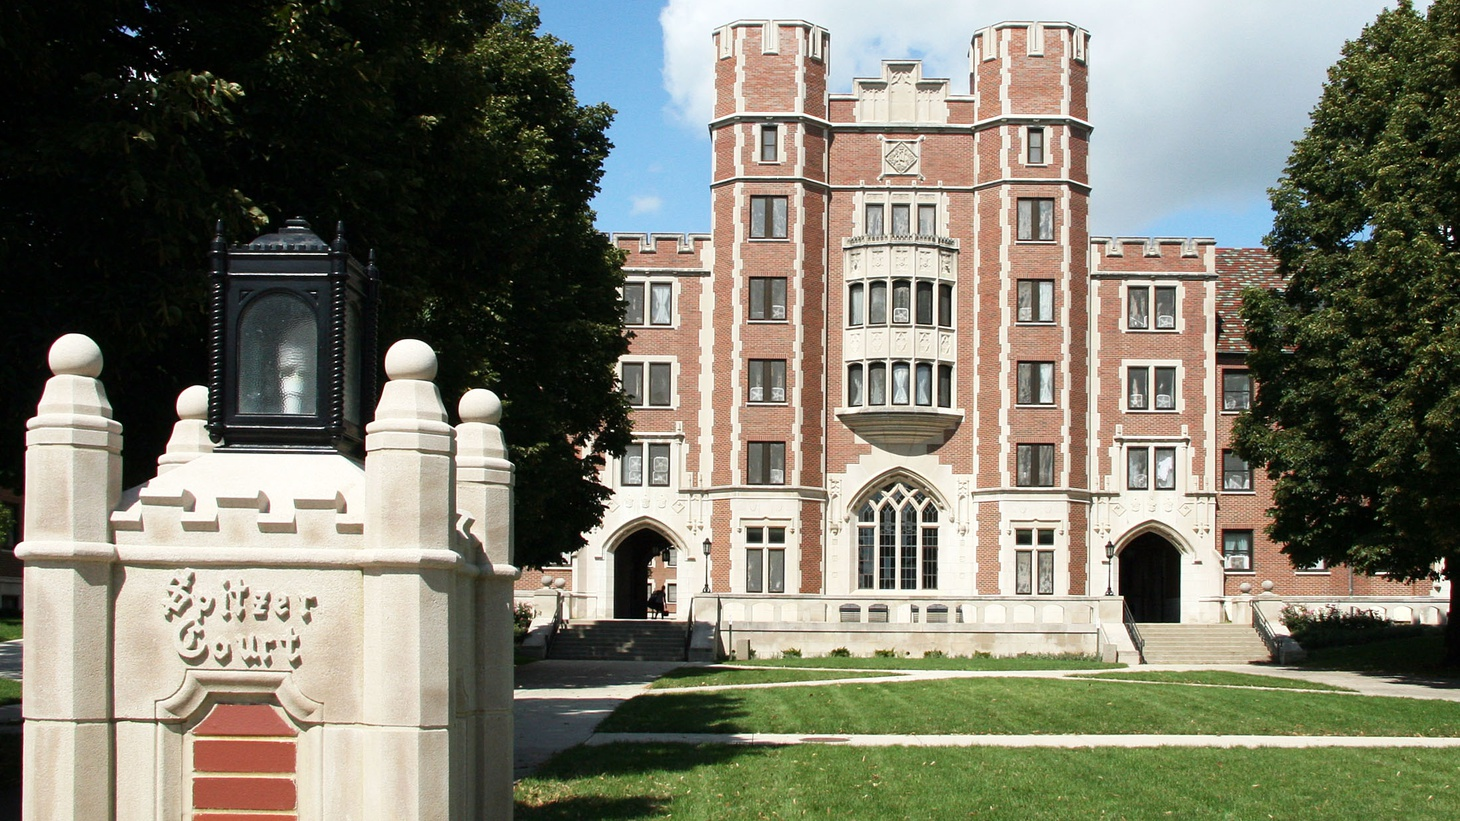 Cary Quad, a student residence hall on the campus of Purdue University in West Lafayette, Indiana. Spitzer Court is the open courtyard within the quad.